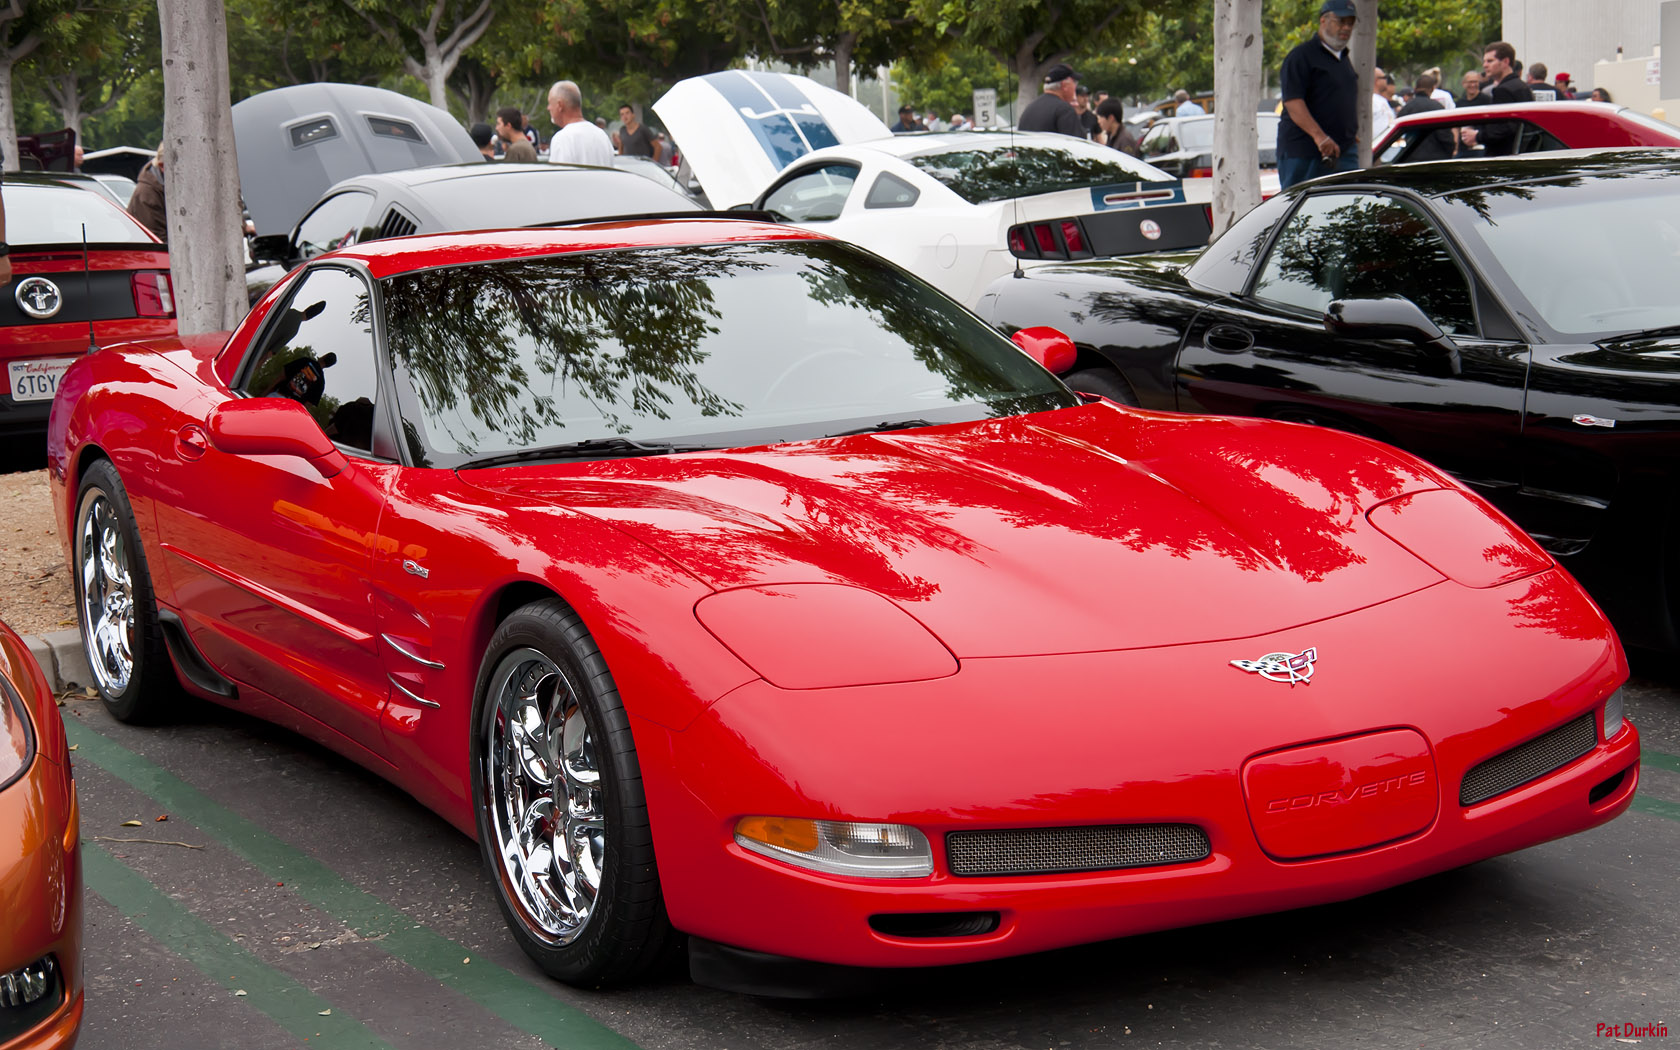 chevrolet corvette c5 hardtop 2003 wallpaper